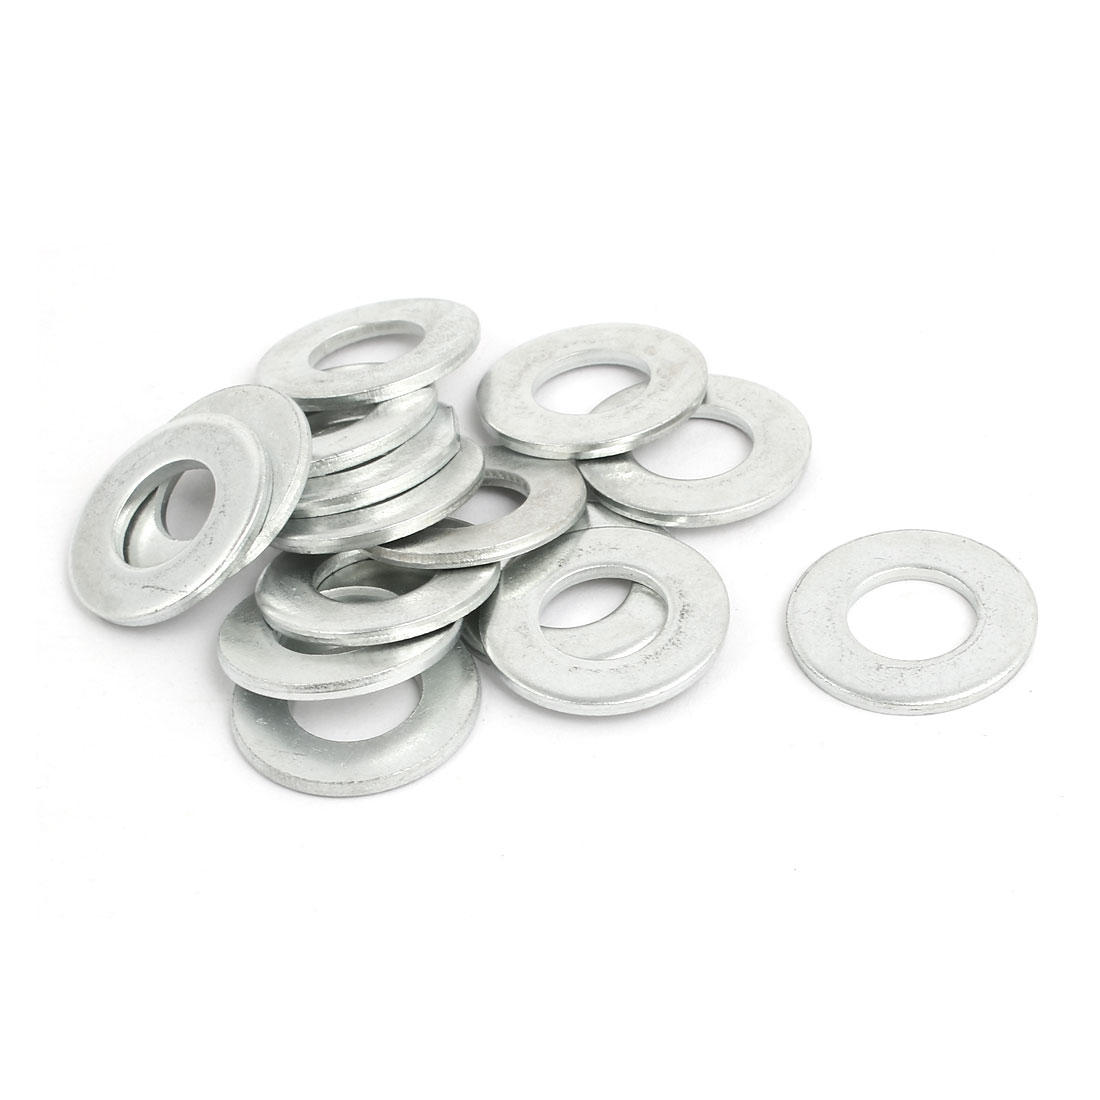 M12 Carbon Steel Zinc Plated Flat Pads Washer Gasket Spacer Silver Tone 15pcs